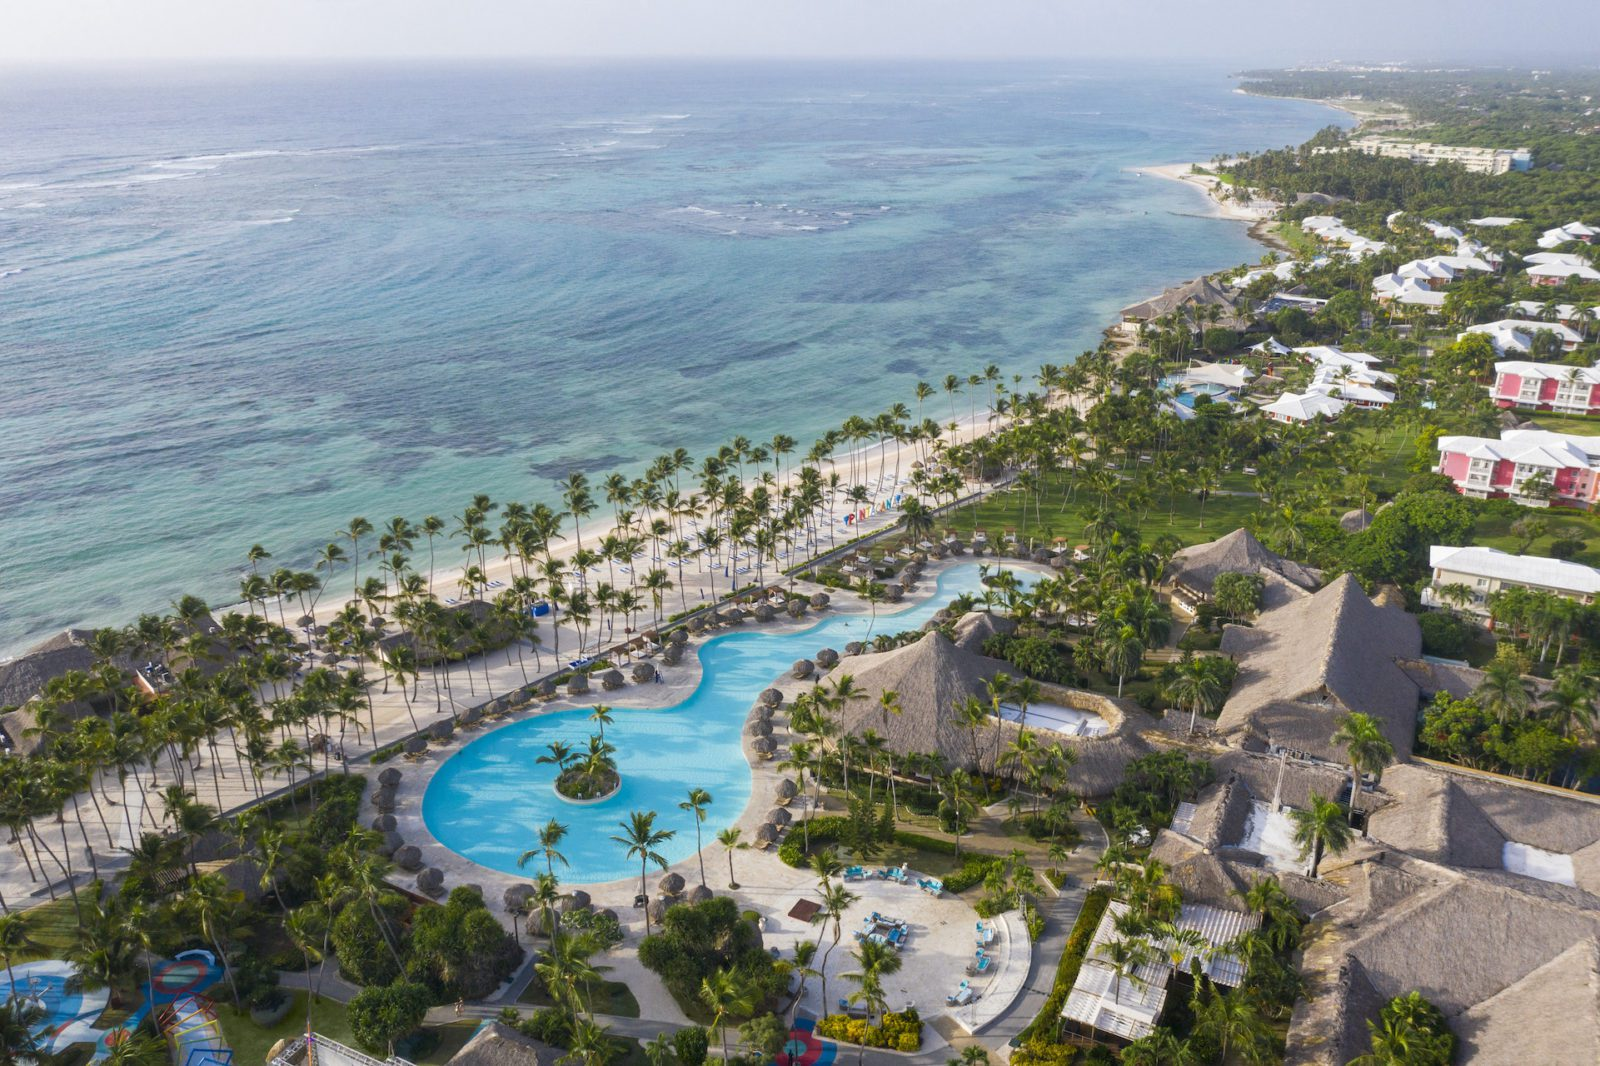 aerial view of Club Med Punta Cana all-inclusive beach resort